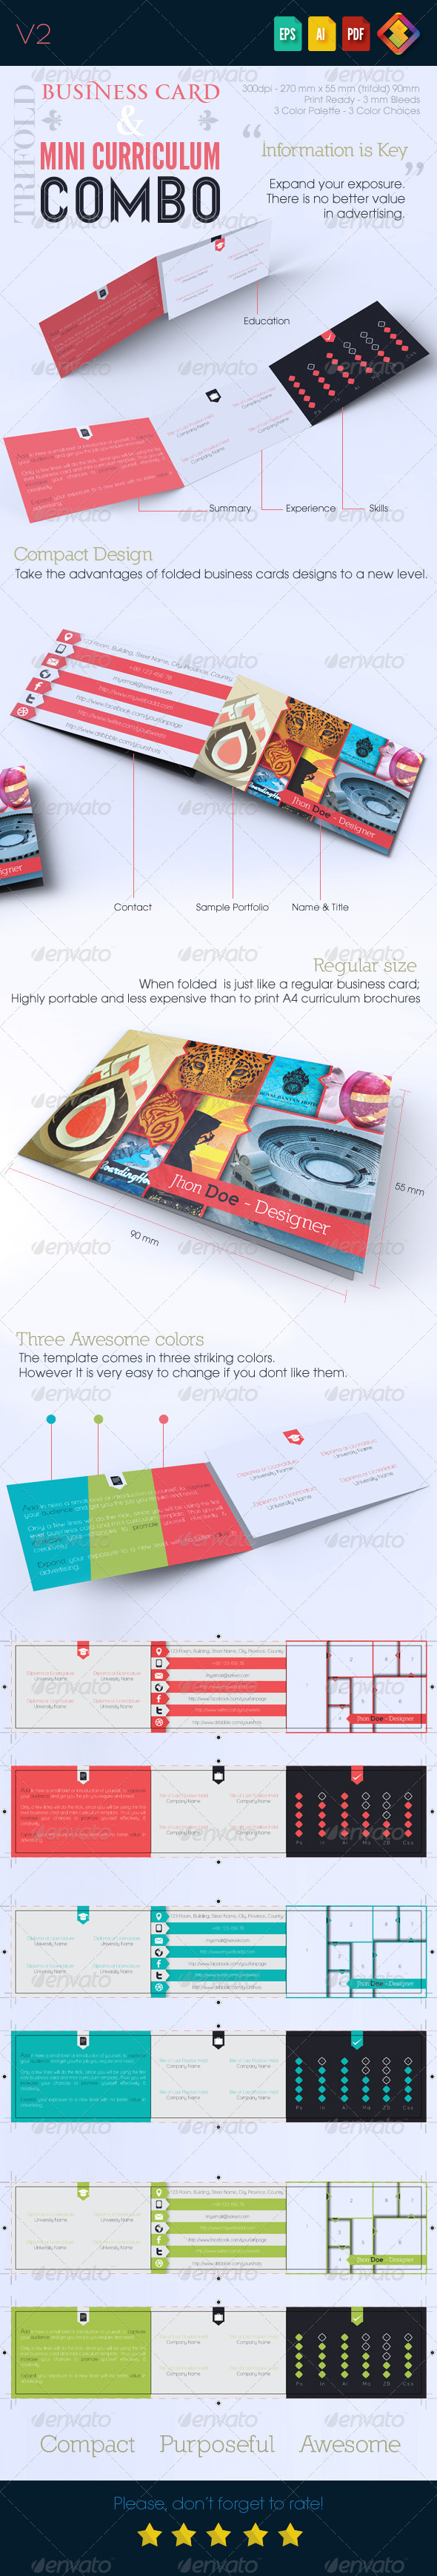 Trifold Business Card with Mini Curriculum Combo advantage ...